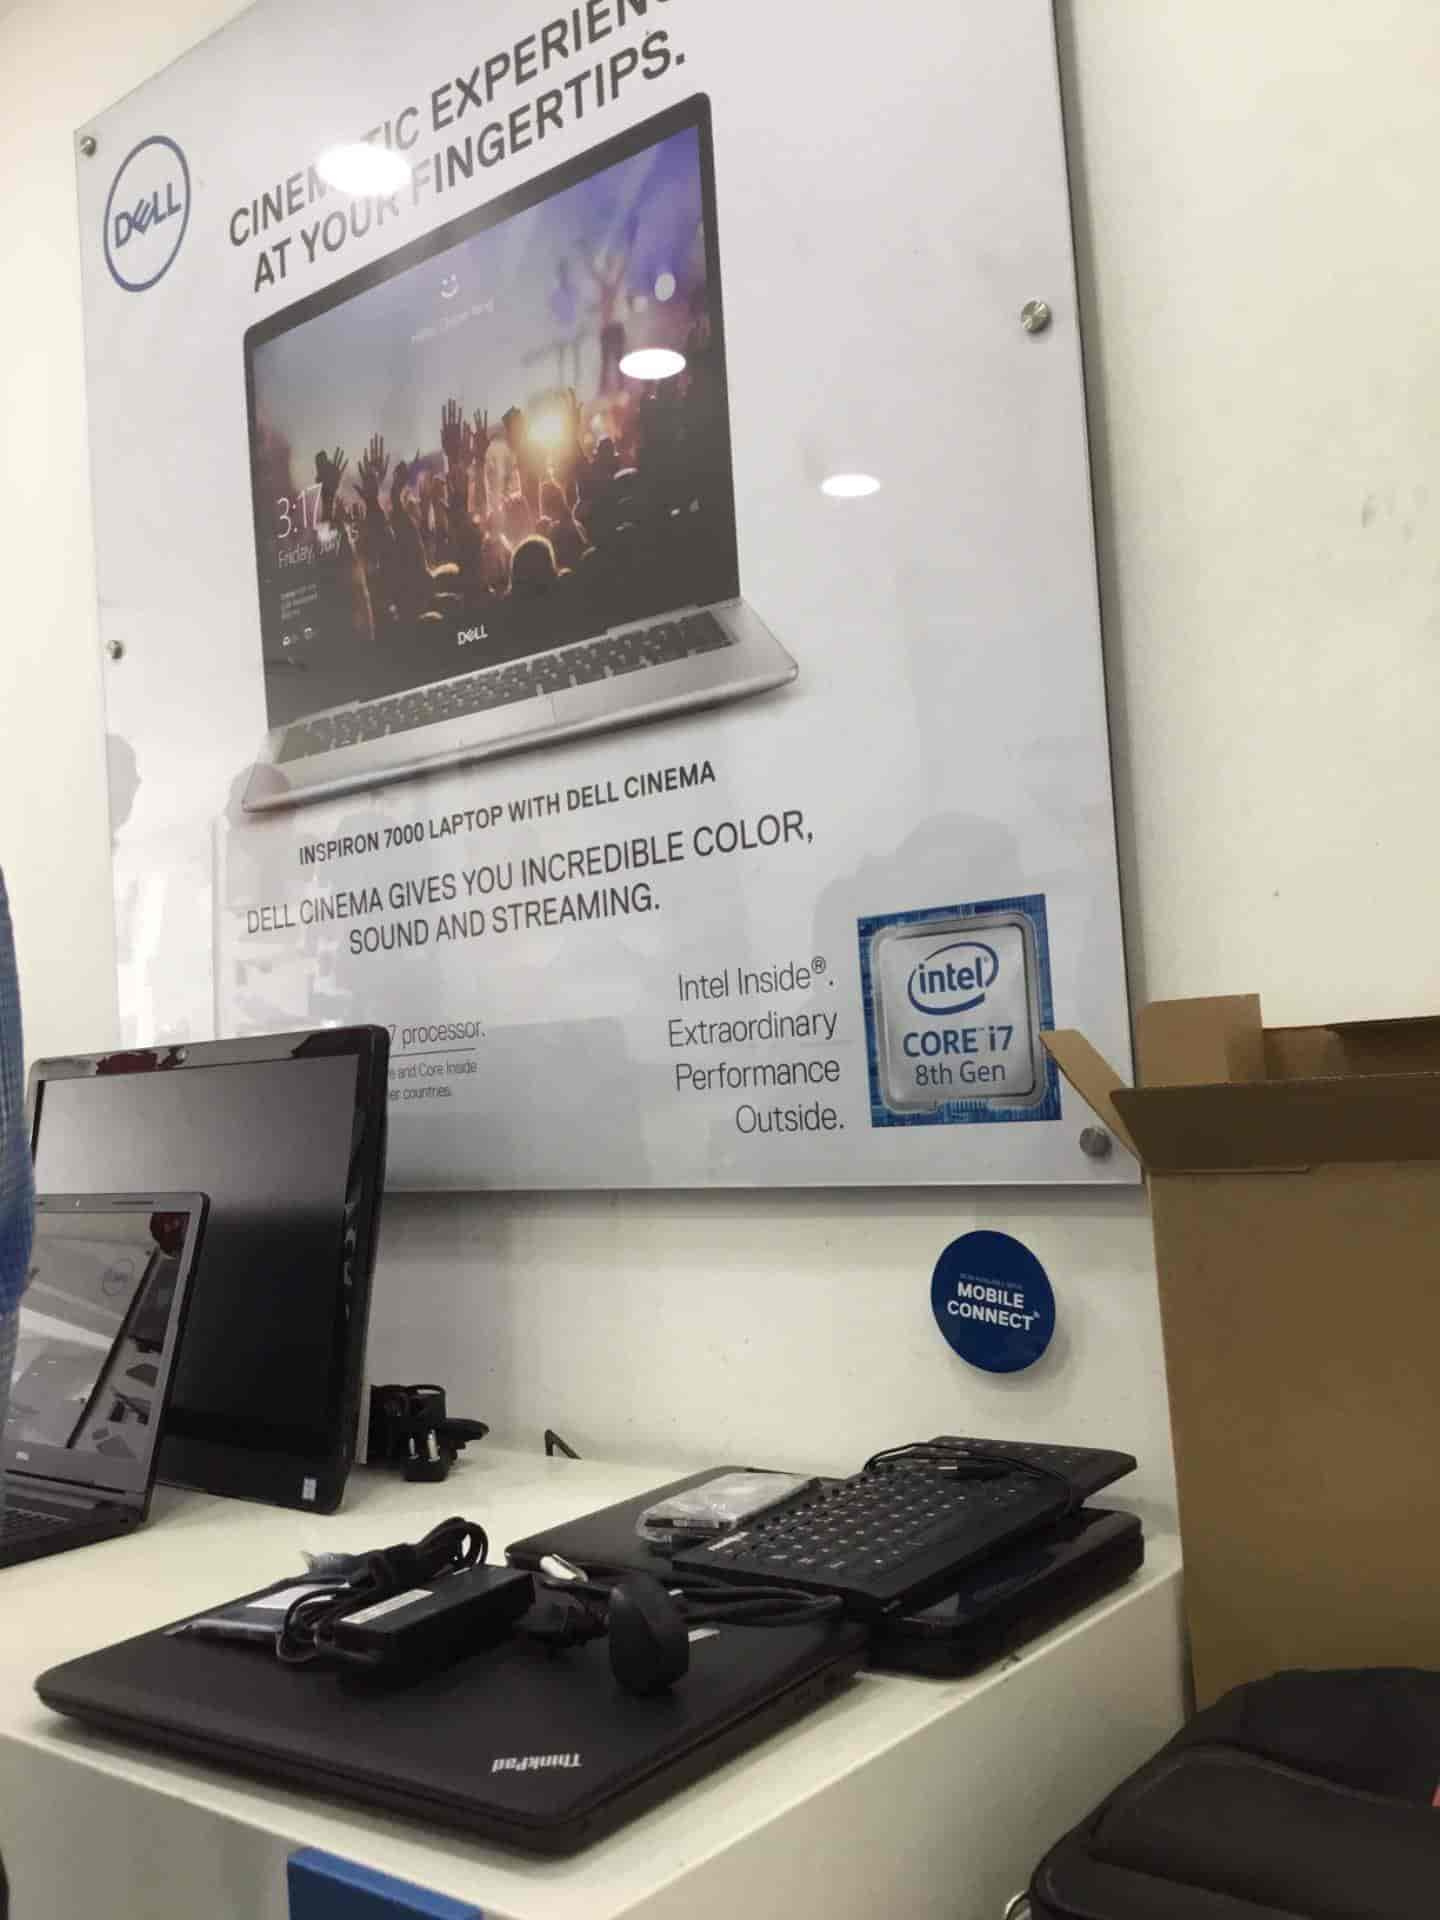 DELL Exclusive Store Photos, Civil Station, Kannur- Pictures